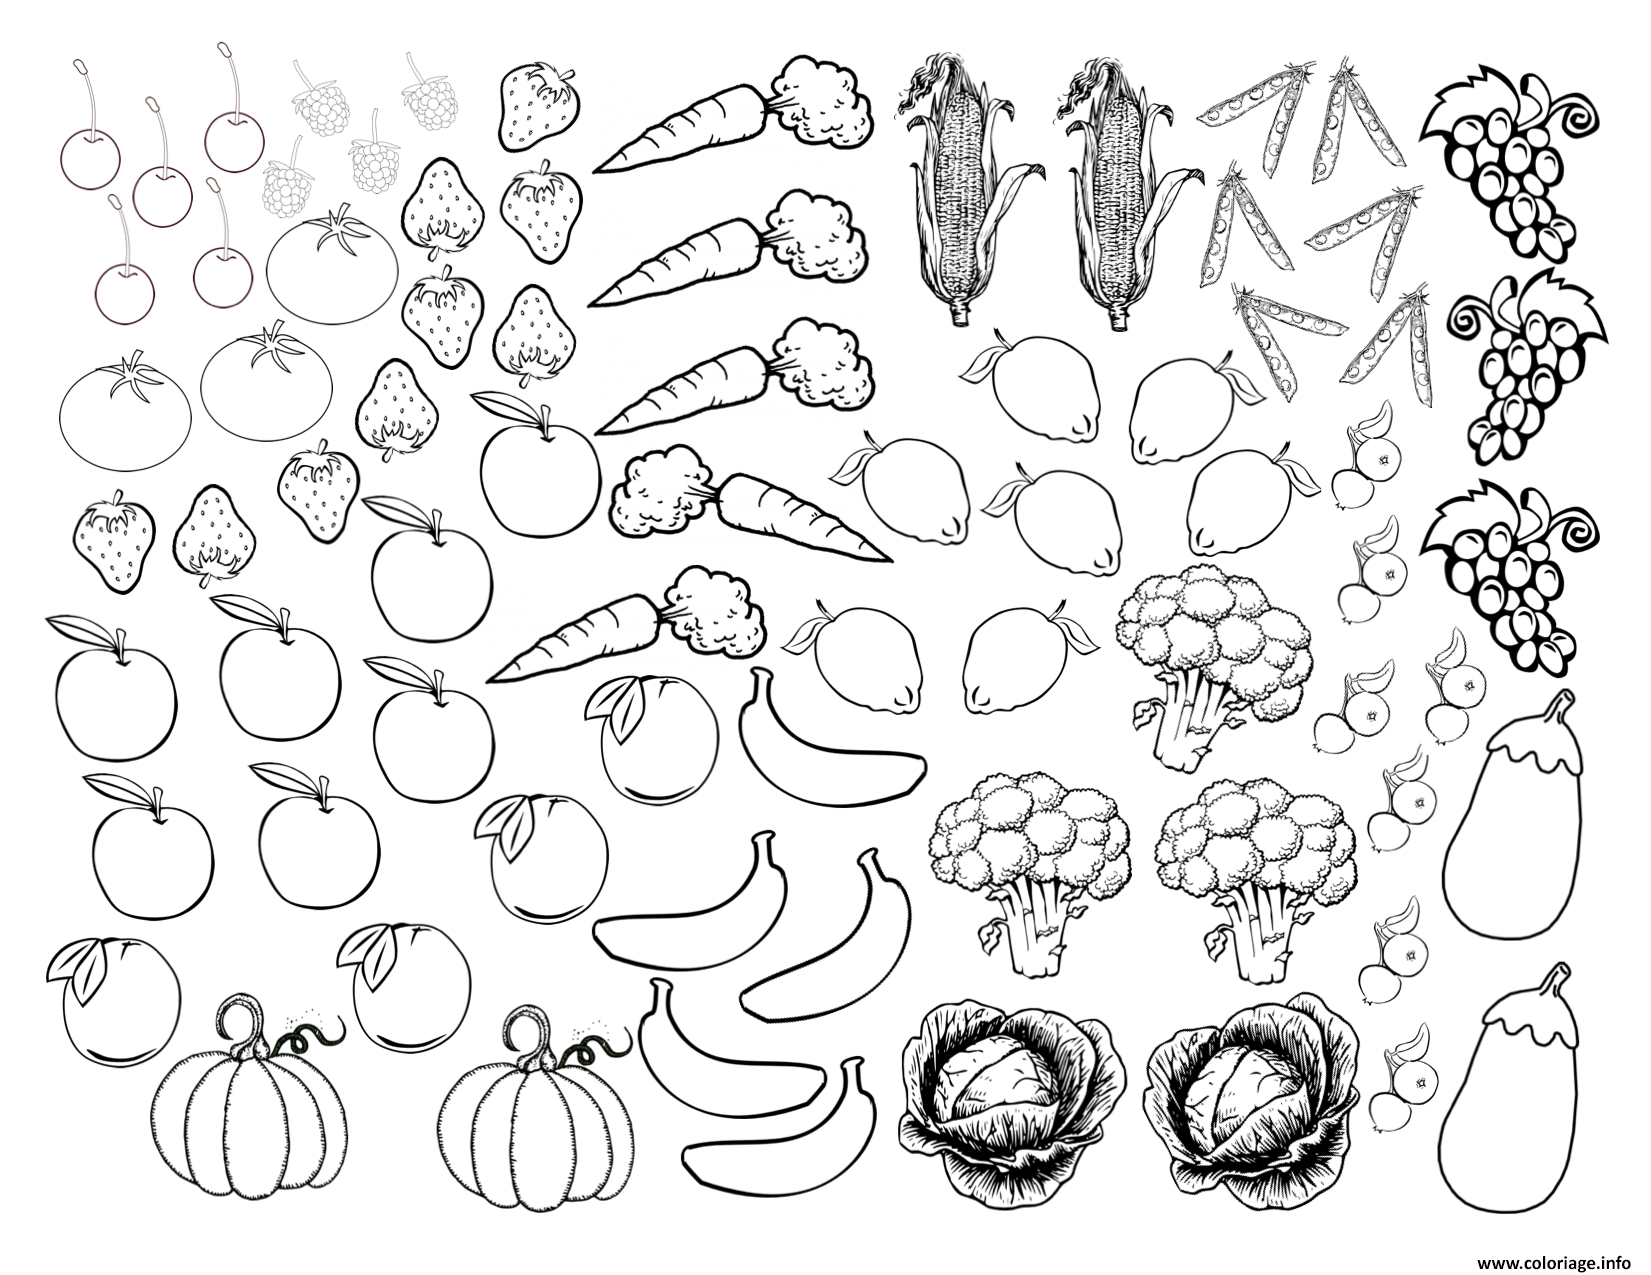 Coloriage fruits et legumes 2 dessin - Fruits a colorier et a imprimer ...